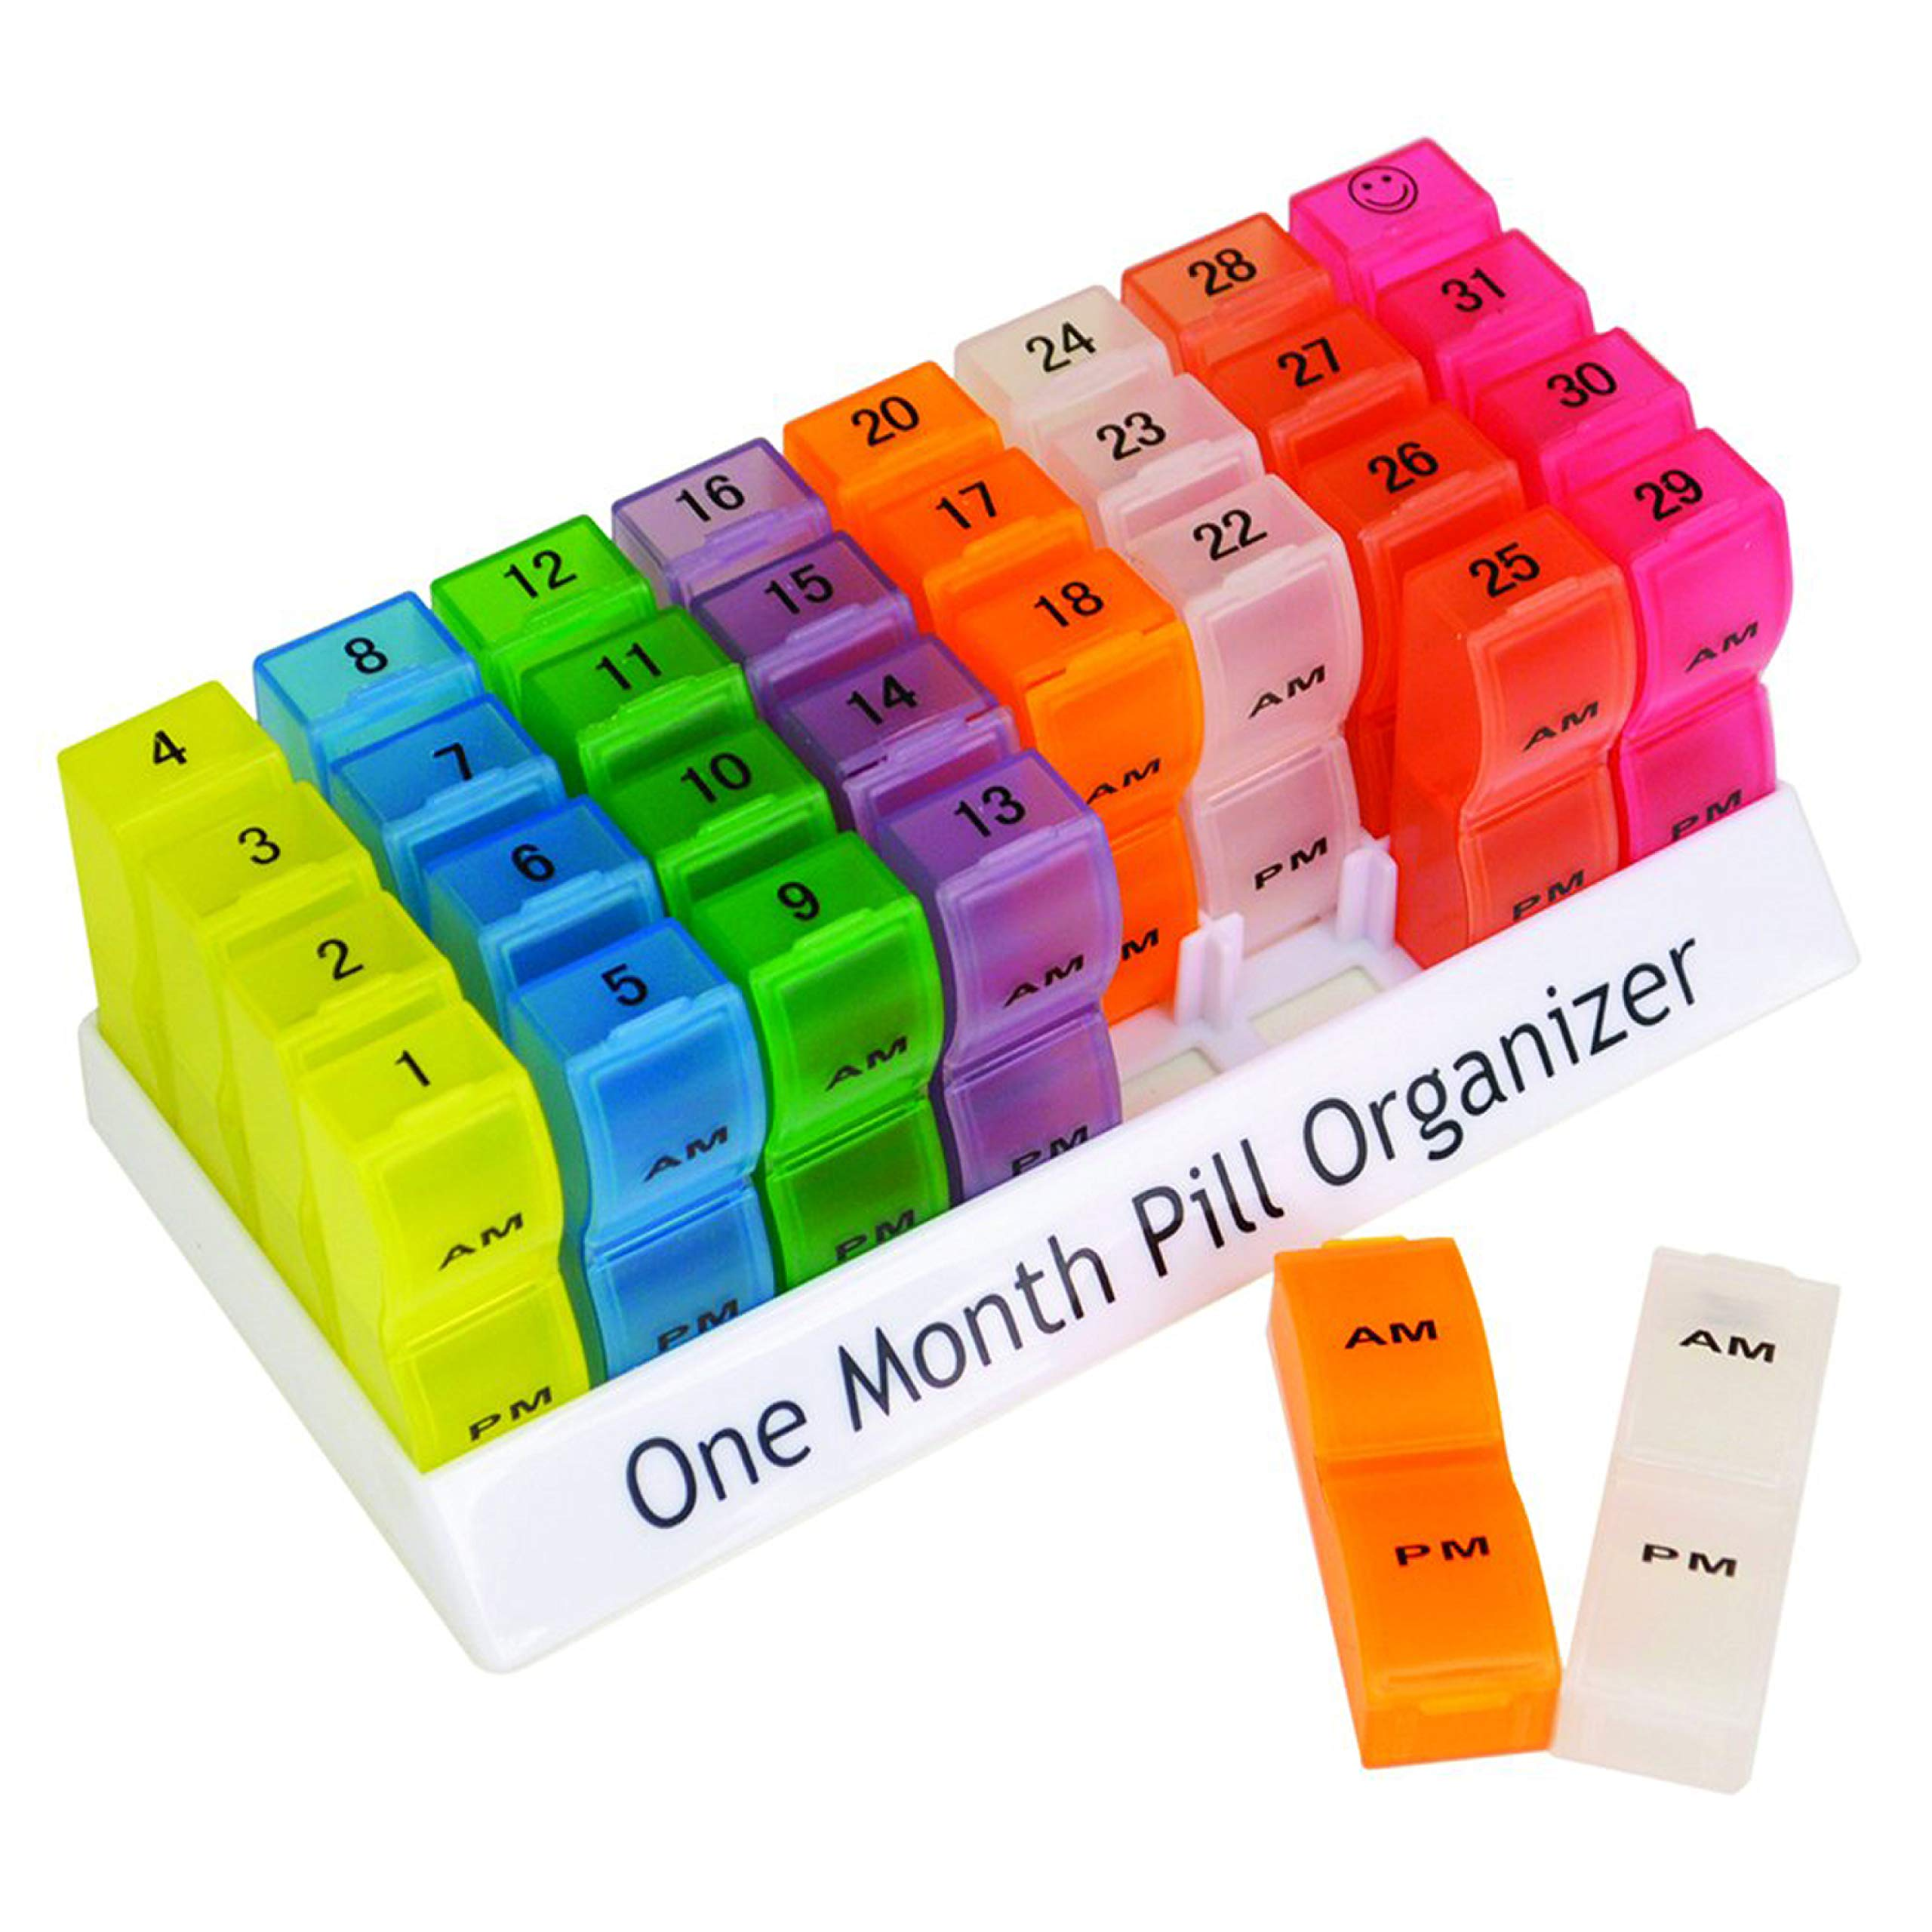 Deke Monthly pill organizer box. 32 compartments/boxes AM-PM daily pill organizer/each day.Pillbox medicine holder case dispenser. Supplement, medication, pills, vitamin. Small travel individual cases by Deke Home